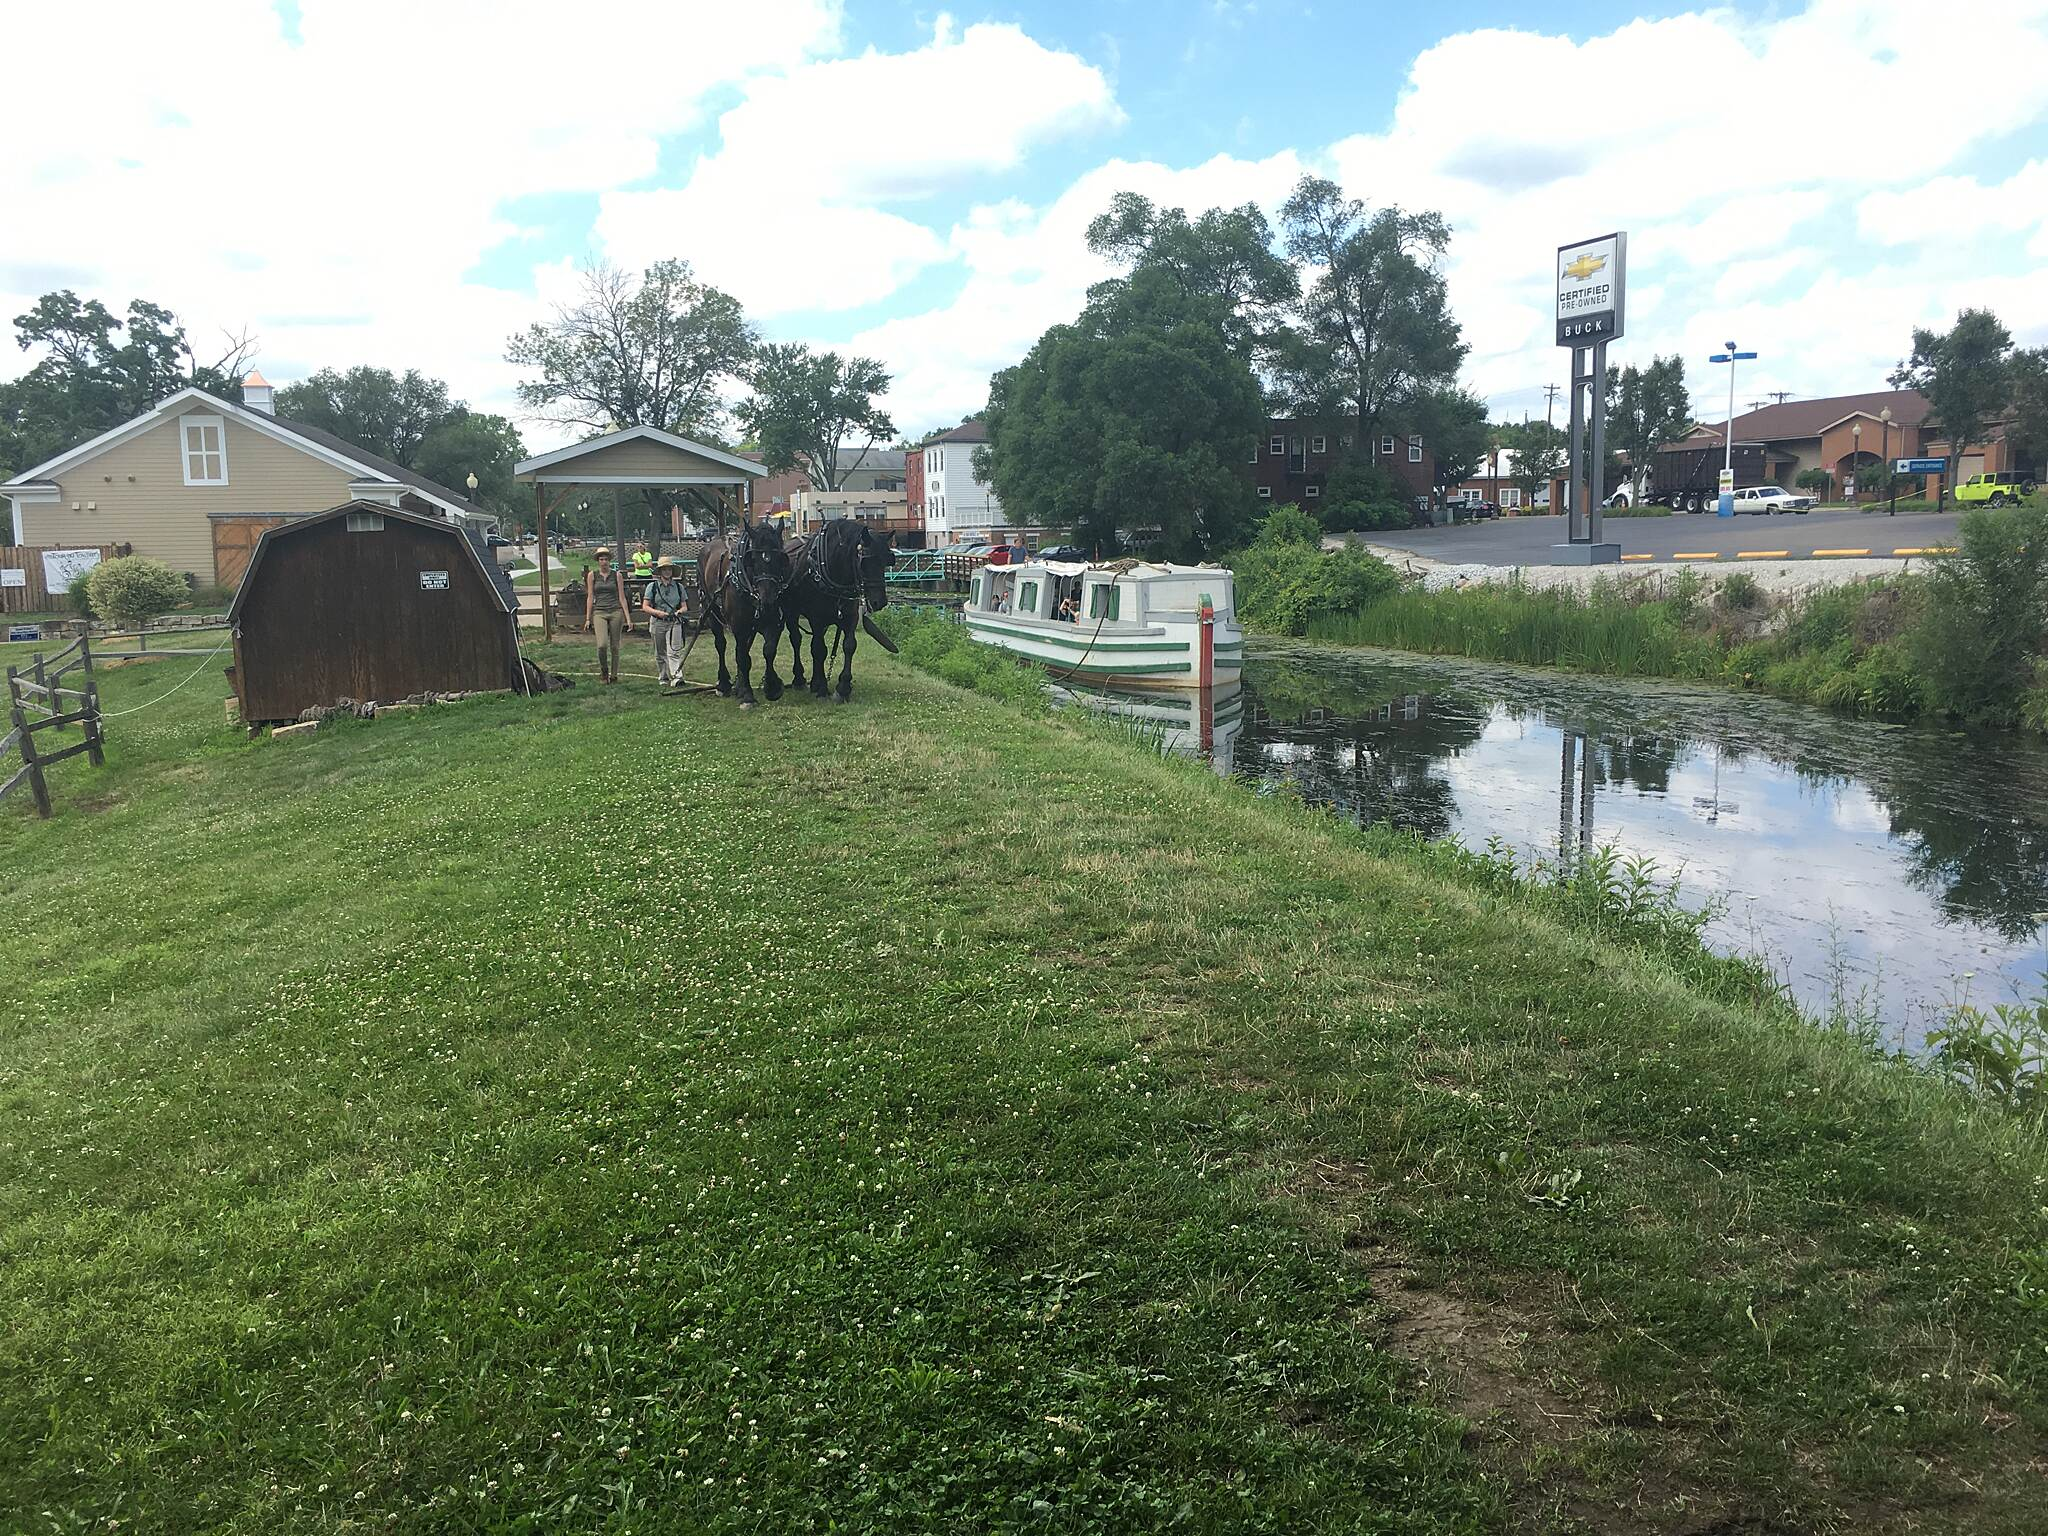 Ohio & Erie Canal Towpath Trail Old Canal Boat In Canal Fulton, they have historic boat rides, pulled by horses, on a section of the O&E Canal